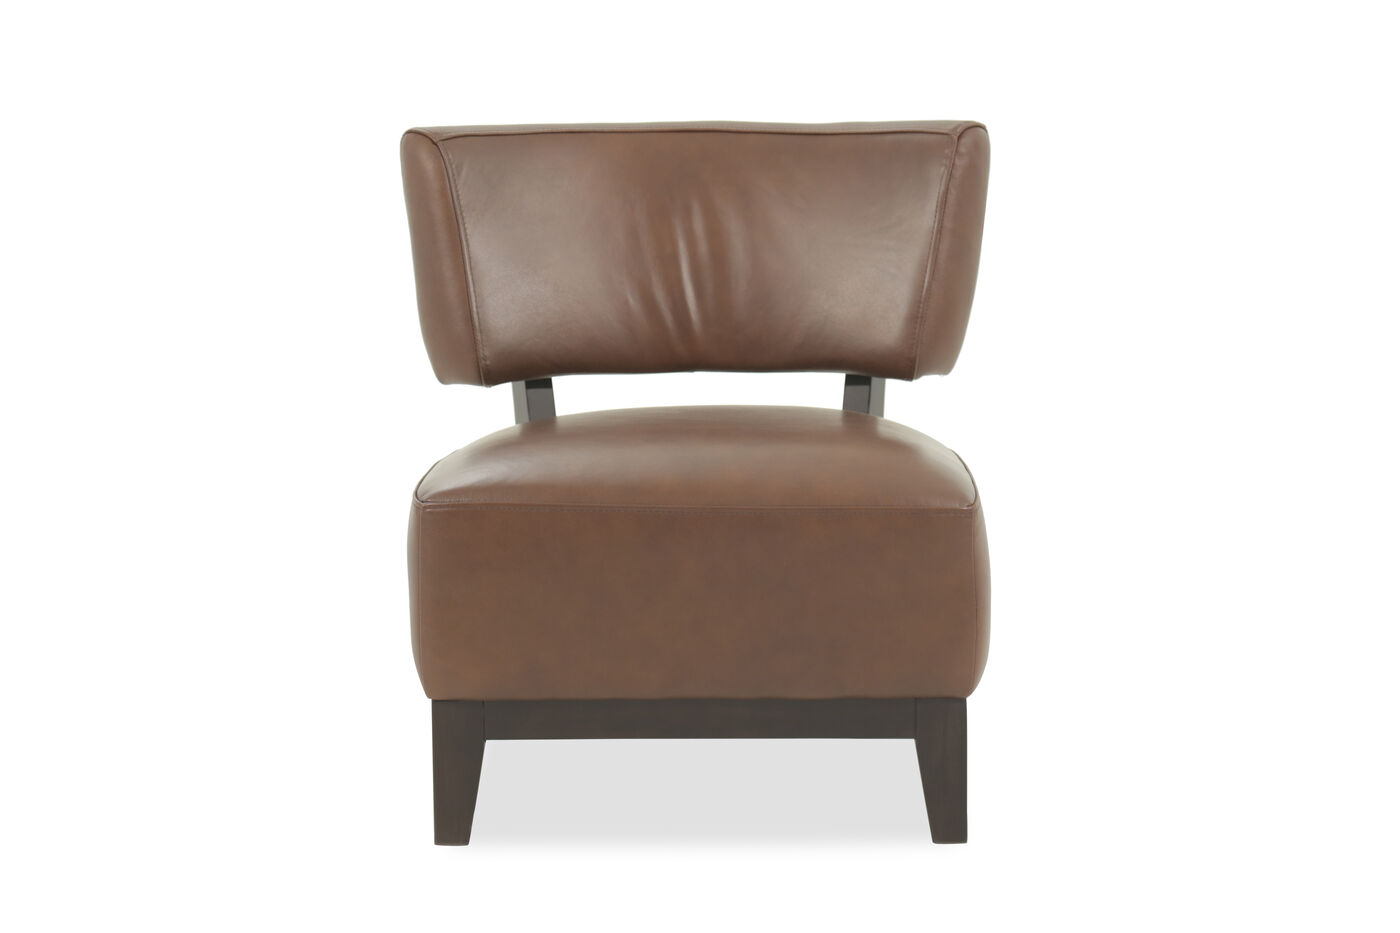 Boulevard Java Leather Accent Chair. Boulevard Java Leather Accent Chair   Mathis Brothers Furniture